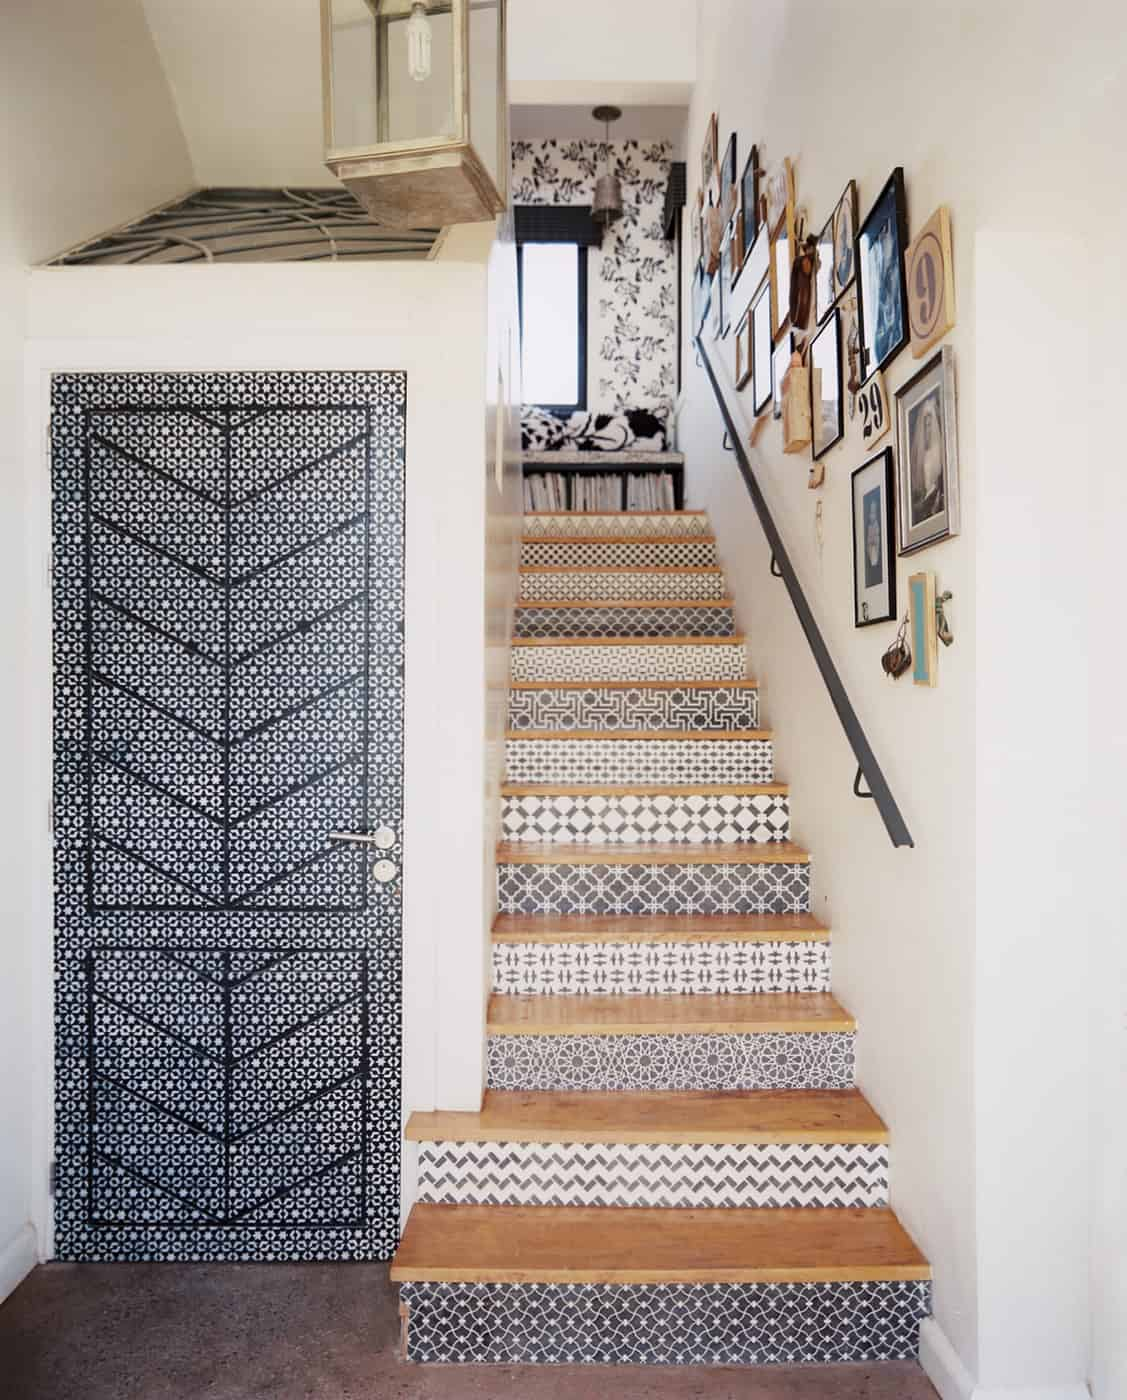 Black and white wallpaper stair risers